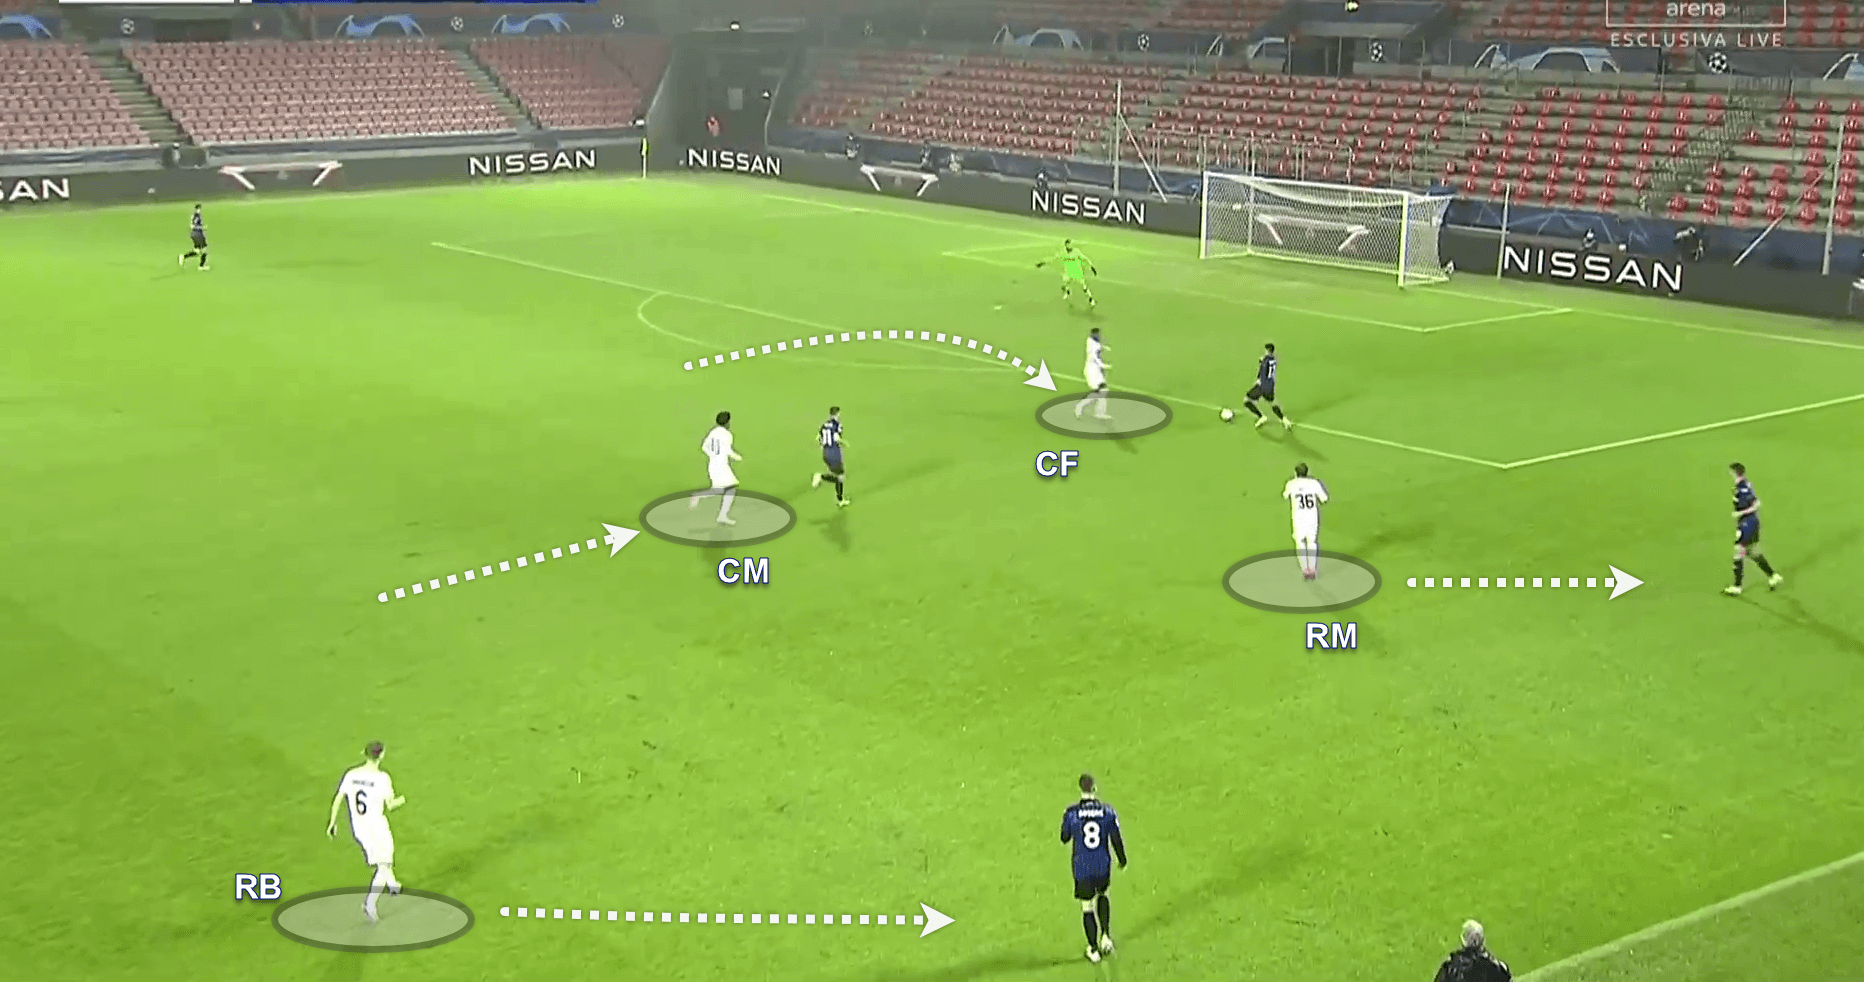 UEFA Champions League 2020/21: FC Midtjylland v Atalanta - tactical analysis tactics